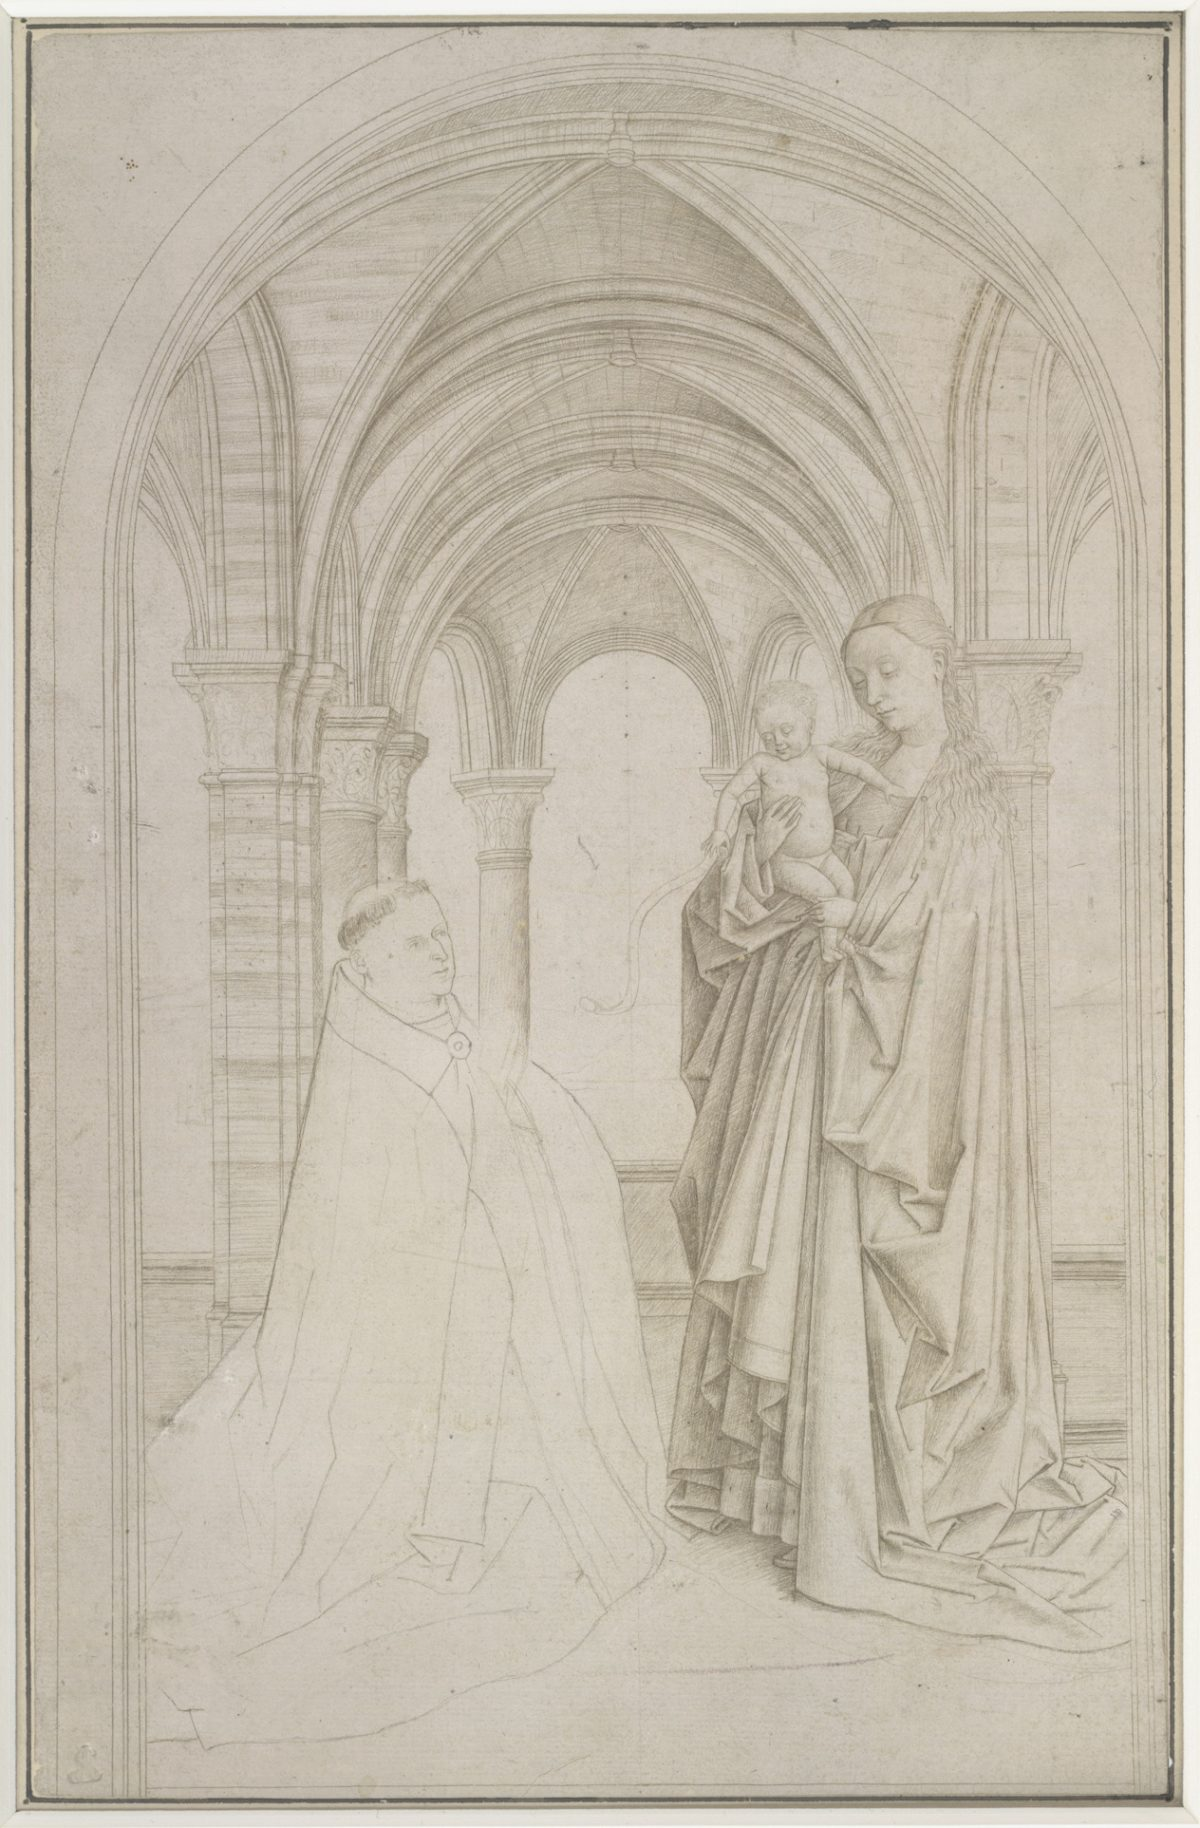 """The Virgin and Child with a Donor (copy after Jan van Eyck's Maelbeke Virgin),"" Attributed to Petrus Christus. Silverpoint on prepared paper, 10 15/16 inches by 7 1/16 inches, The Albertina Museum, Vienna. (Courtesy of The Frick Collection)"